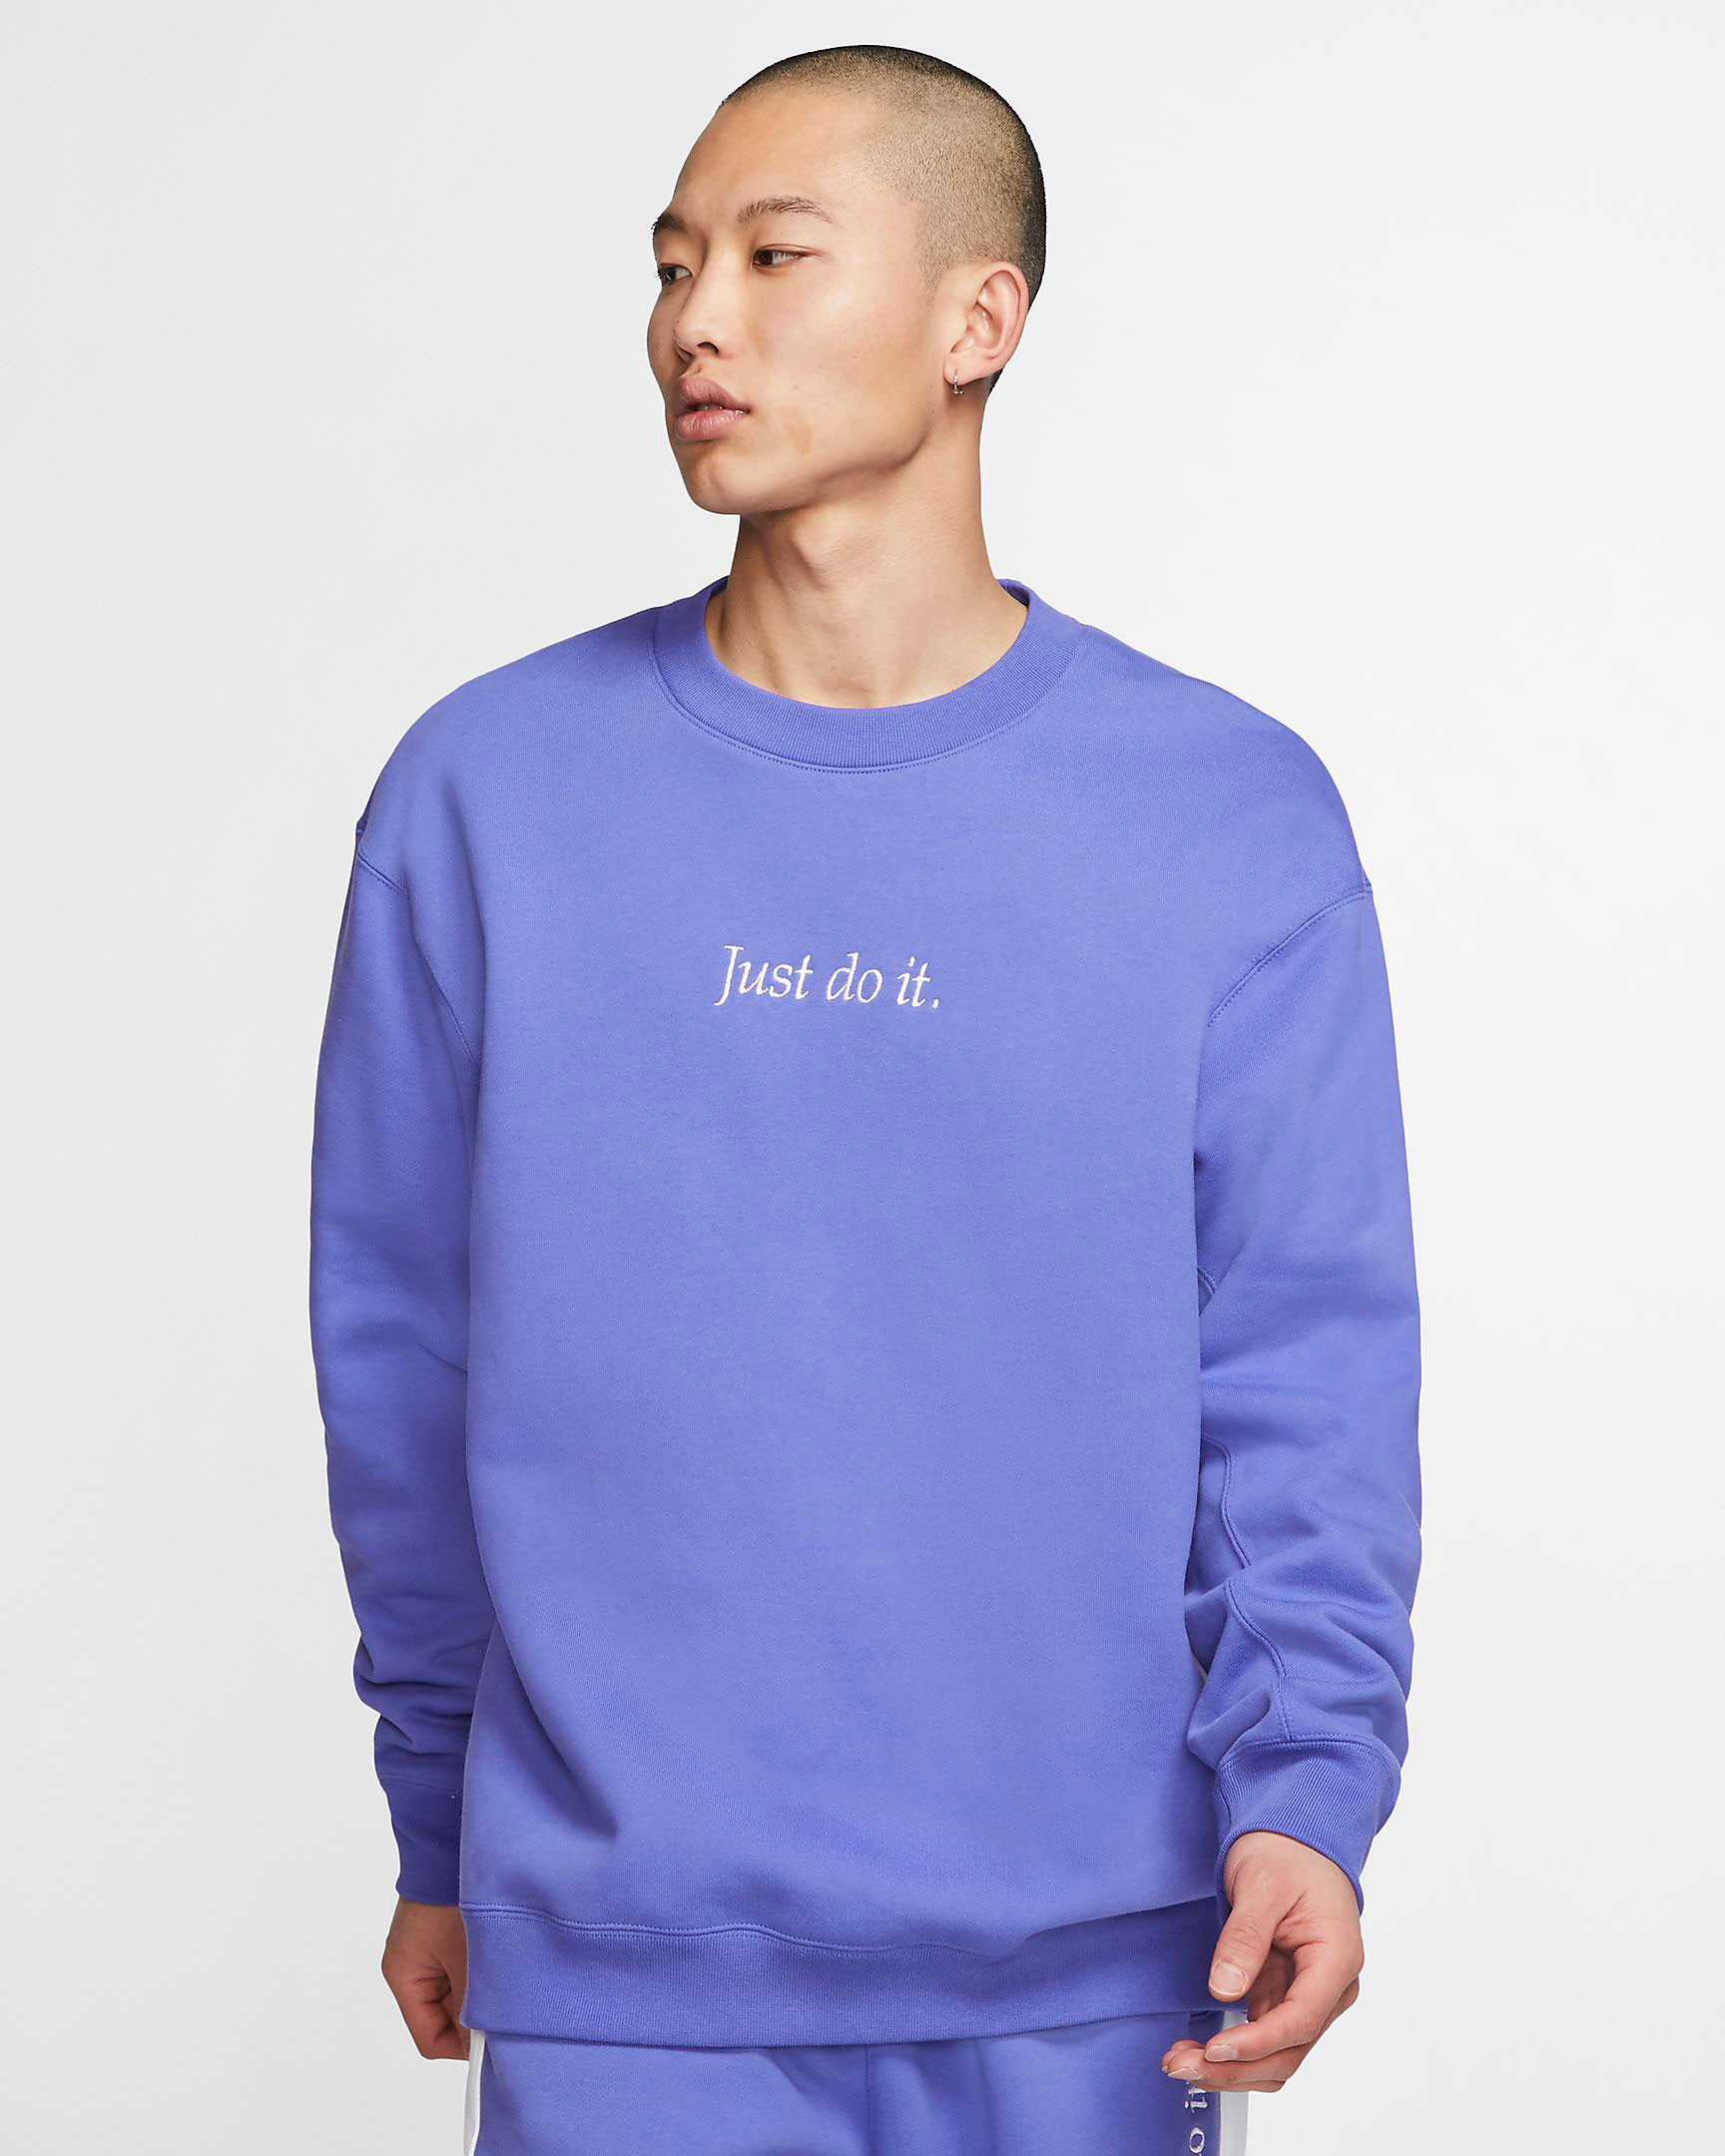 nike-sportswear-jdi-just-do-it-crew-sweatshirt-purple